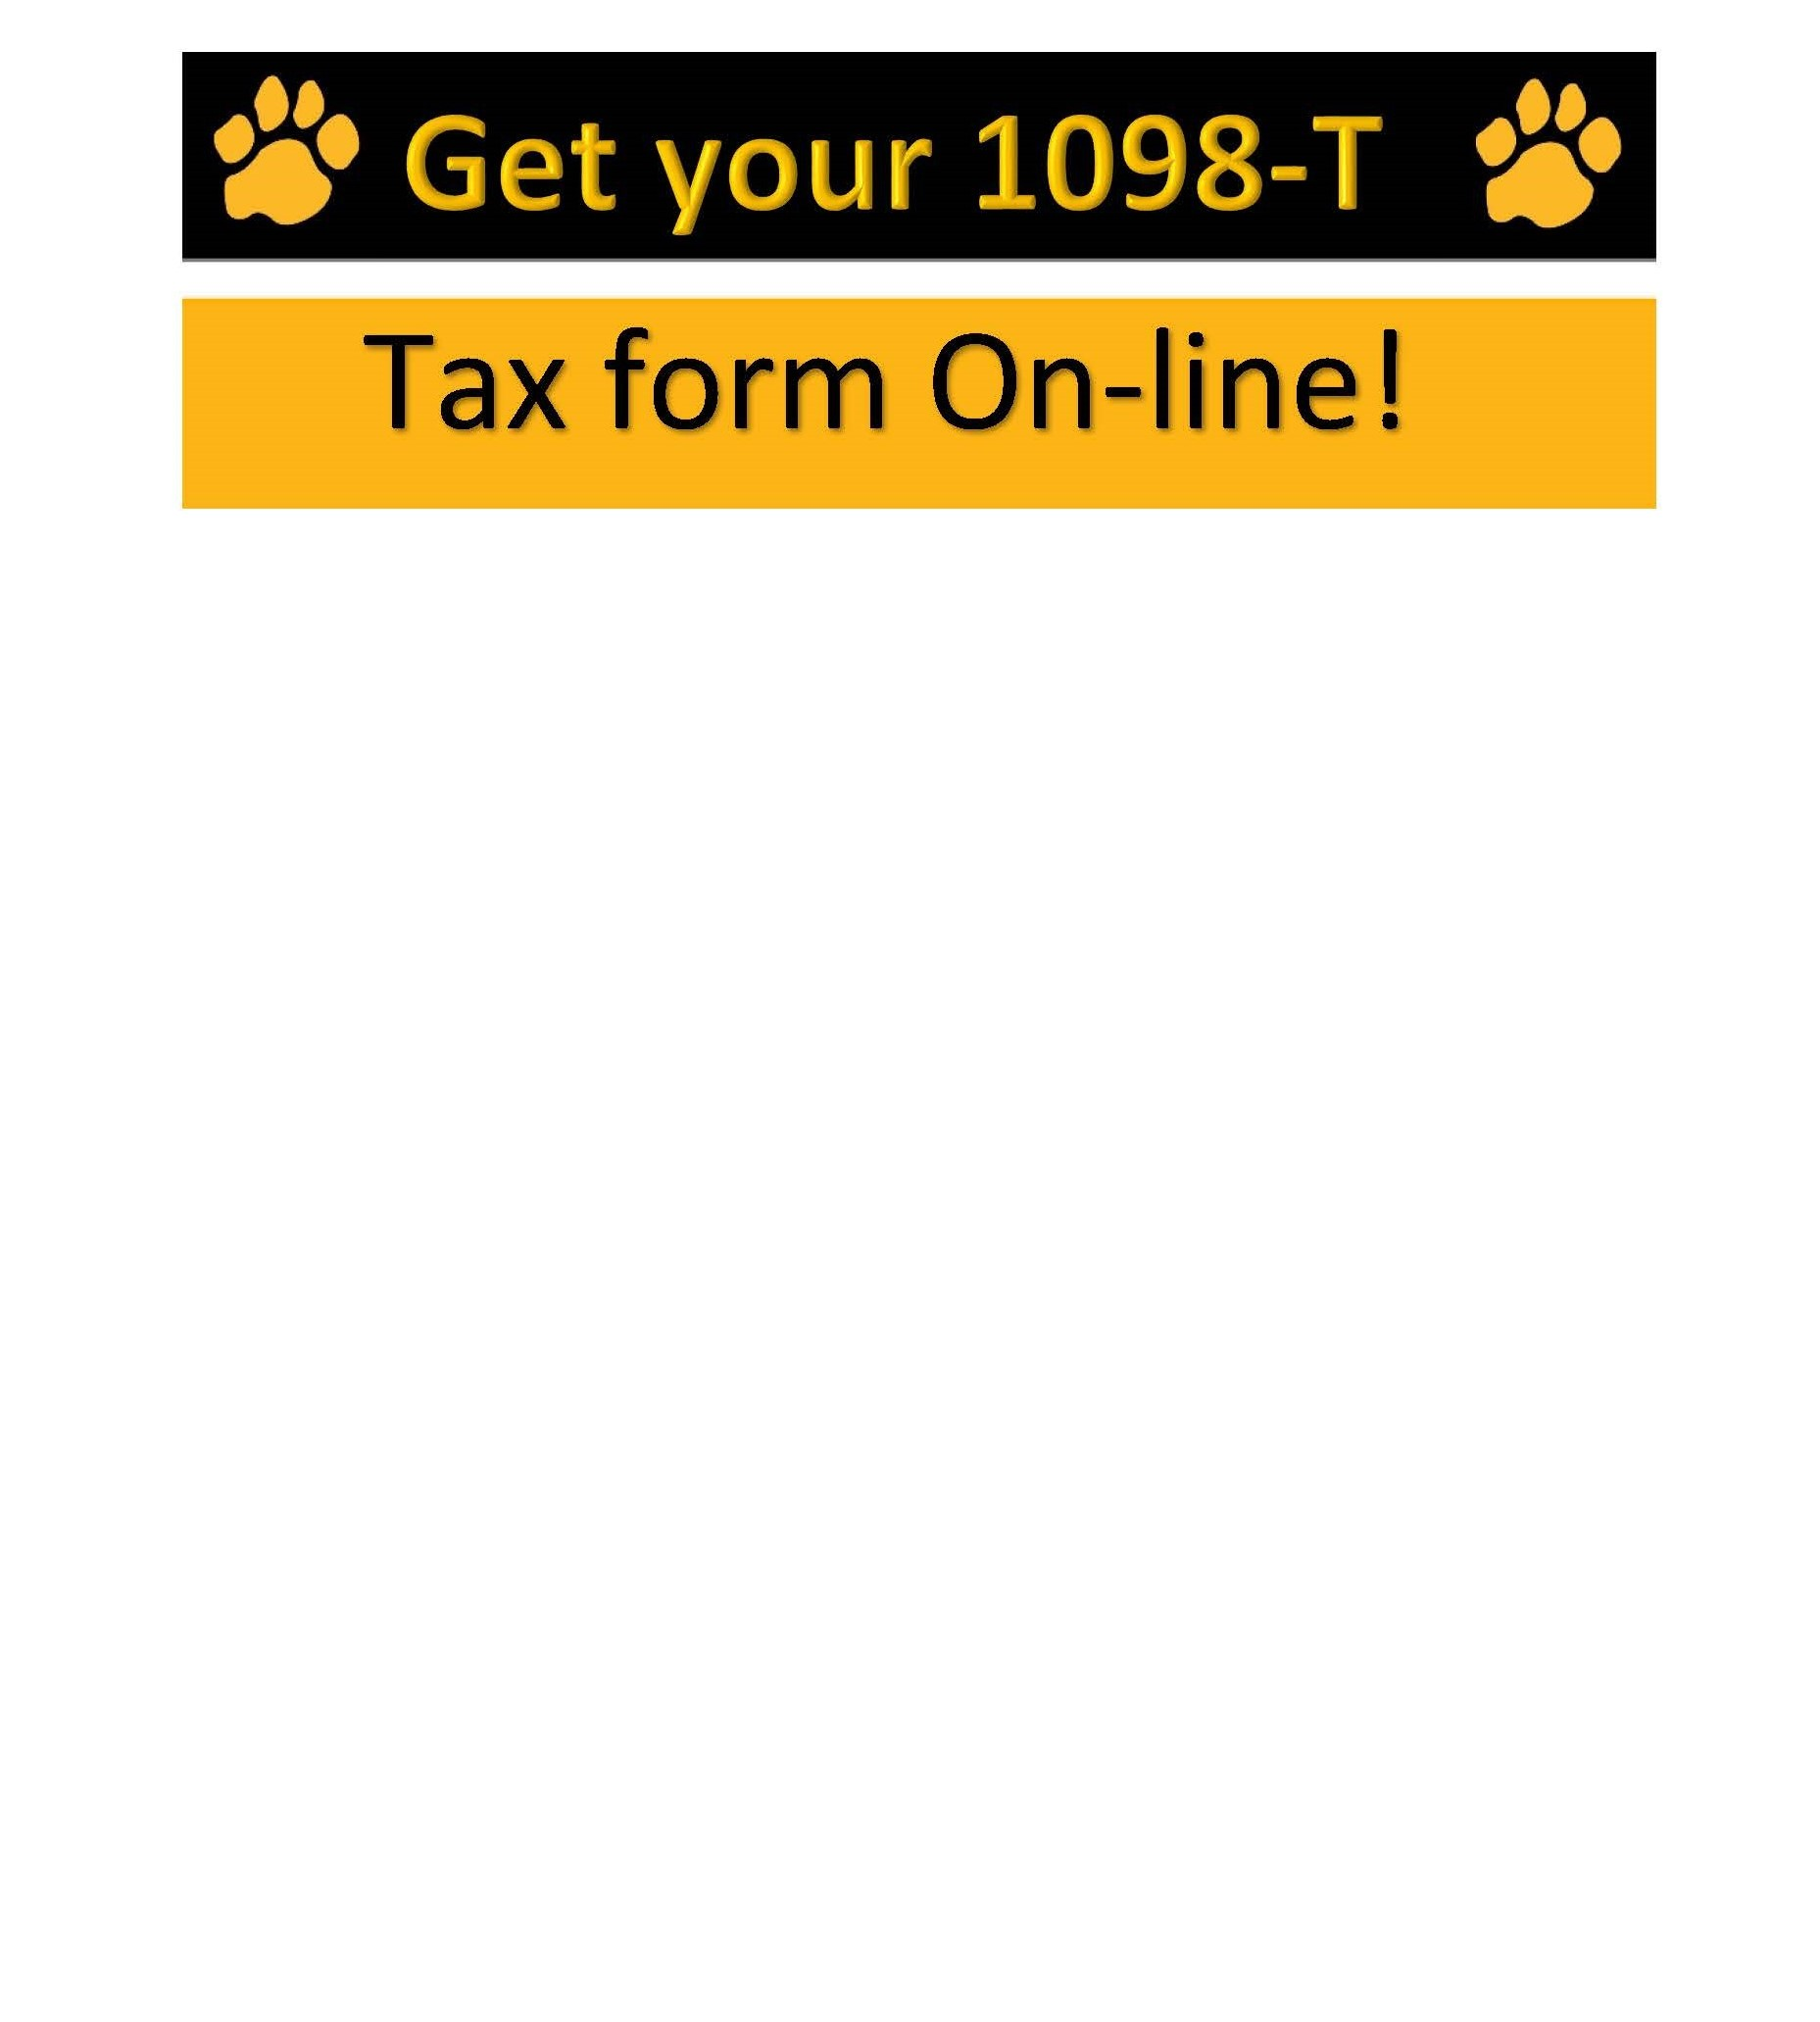 Get your 1098-T Tax form online!